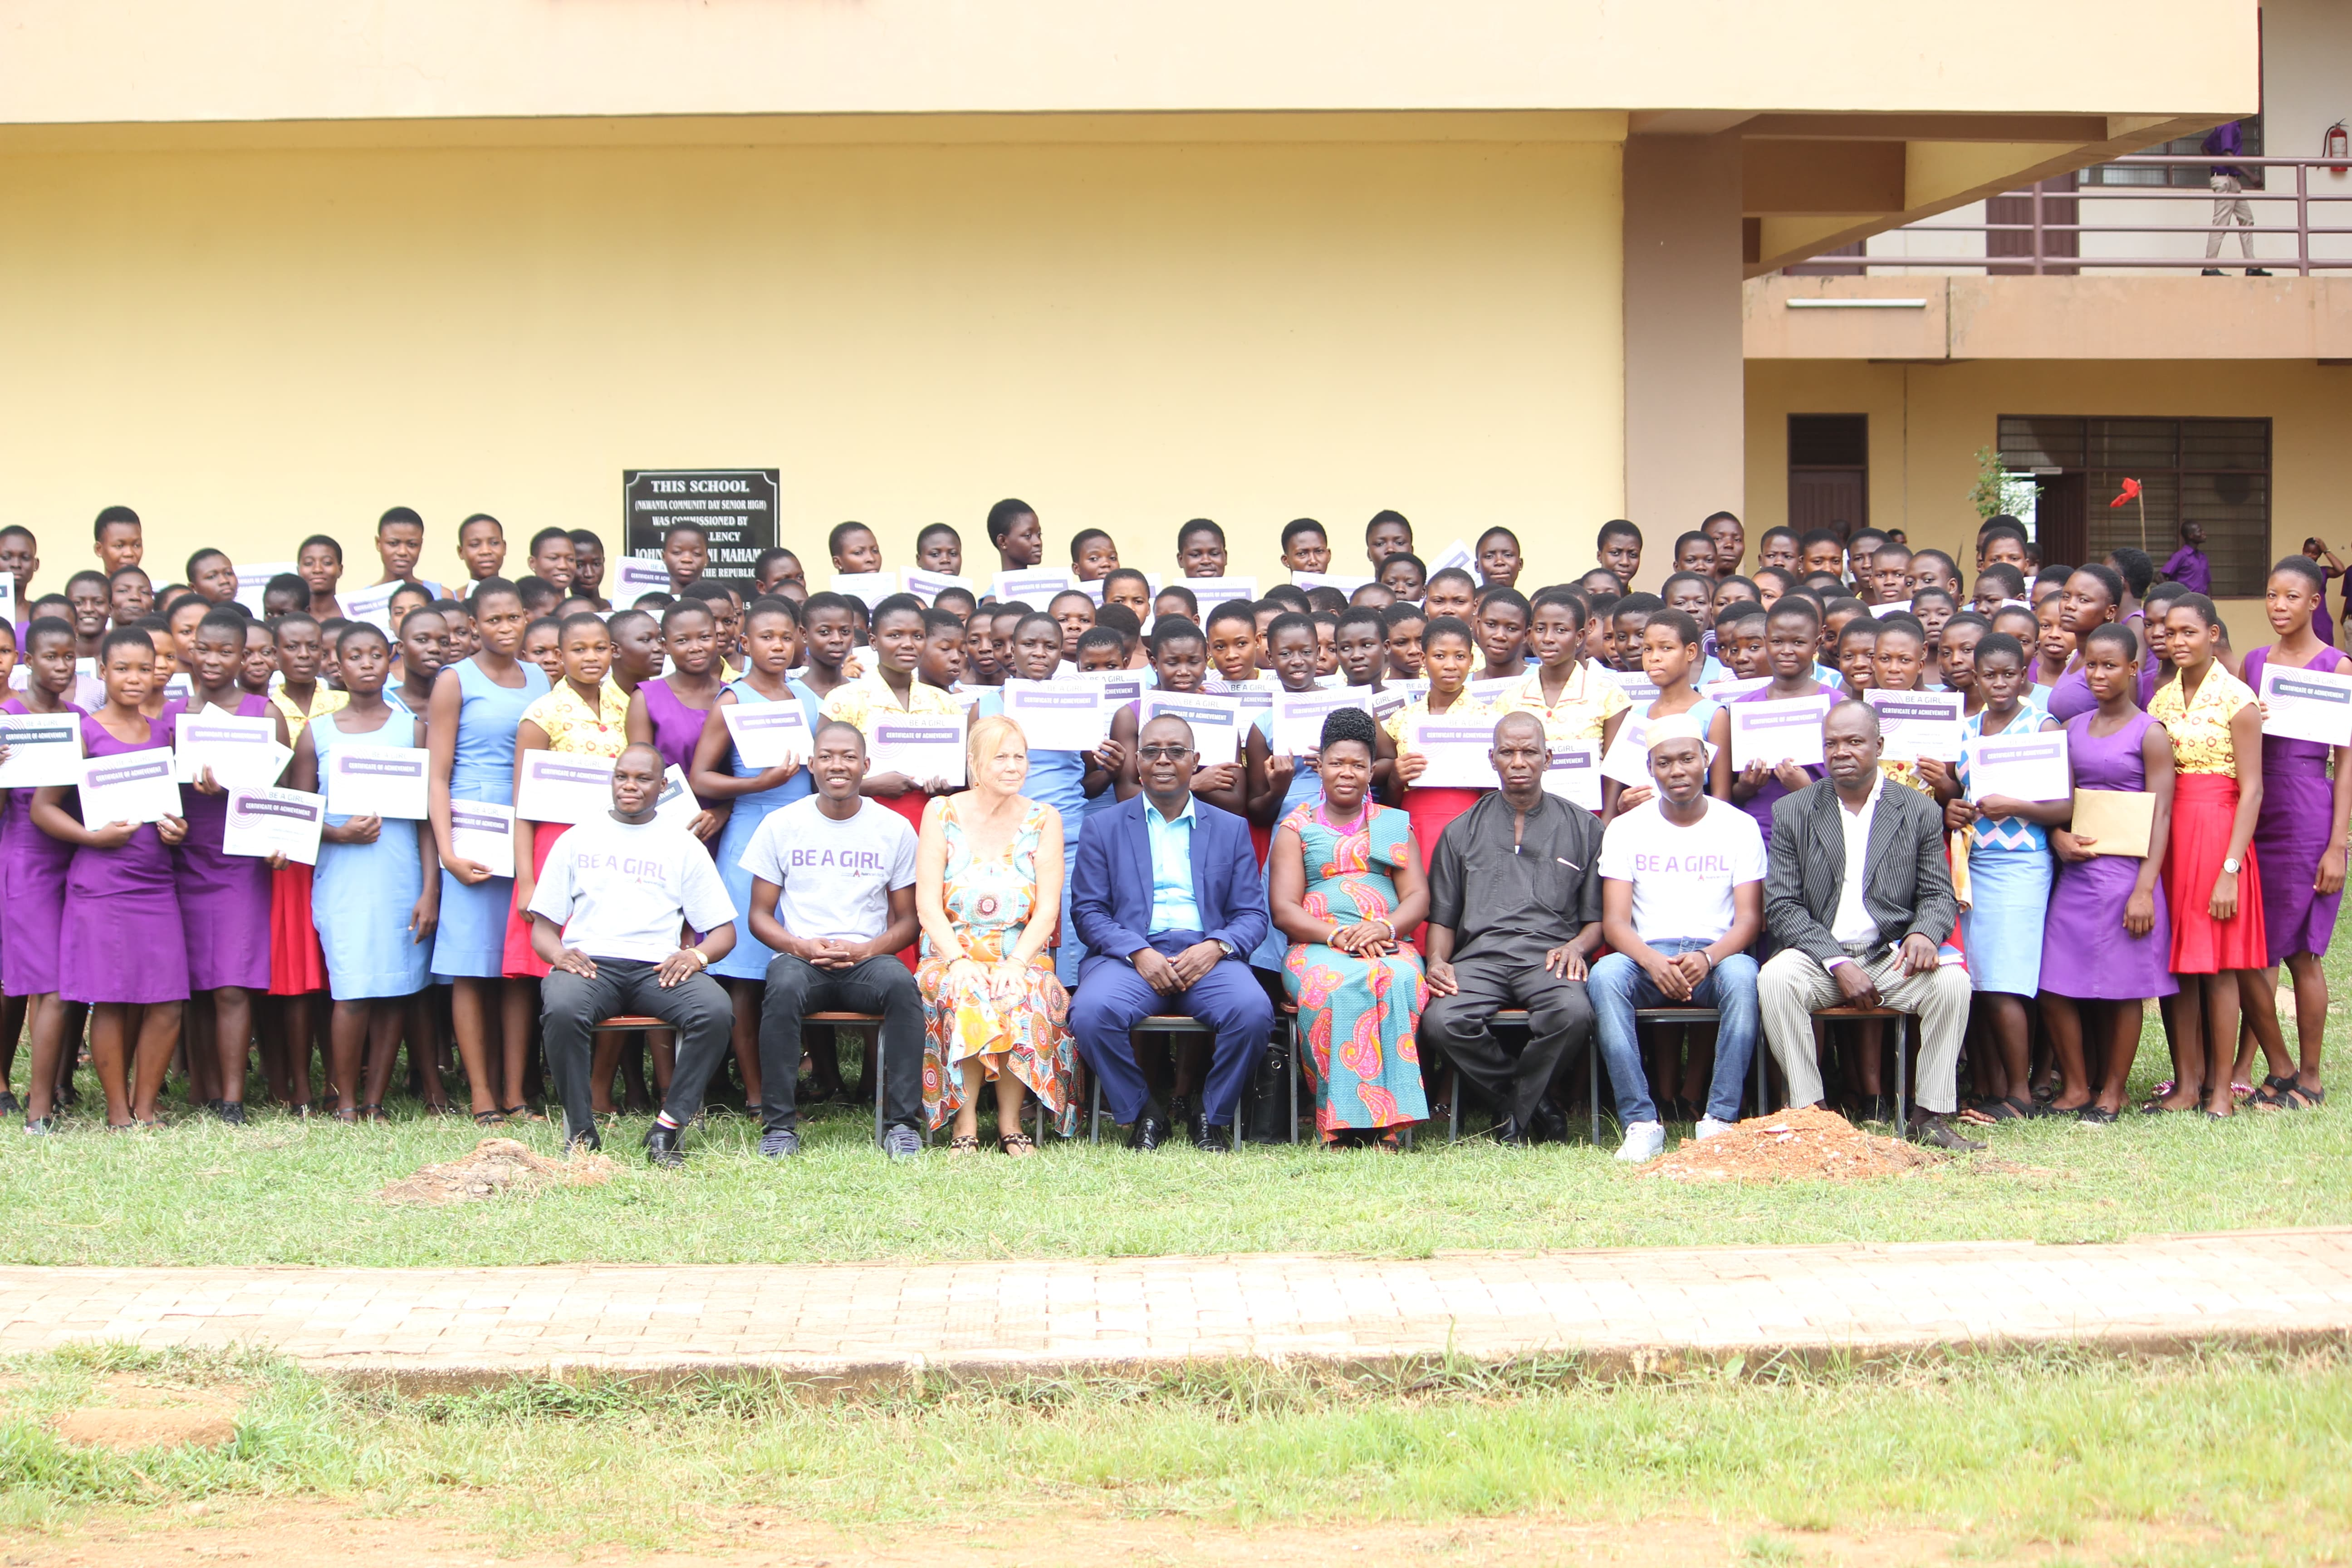 169 High School Students in Nkwanta South Receive 'Be A Girl' Awards